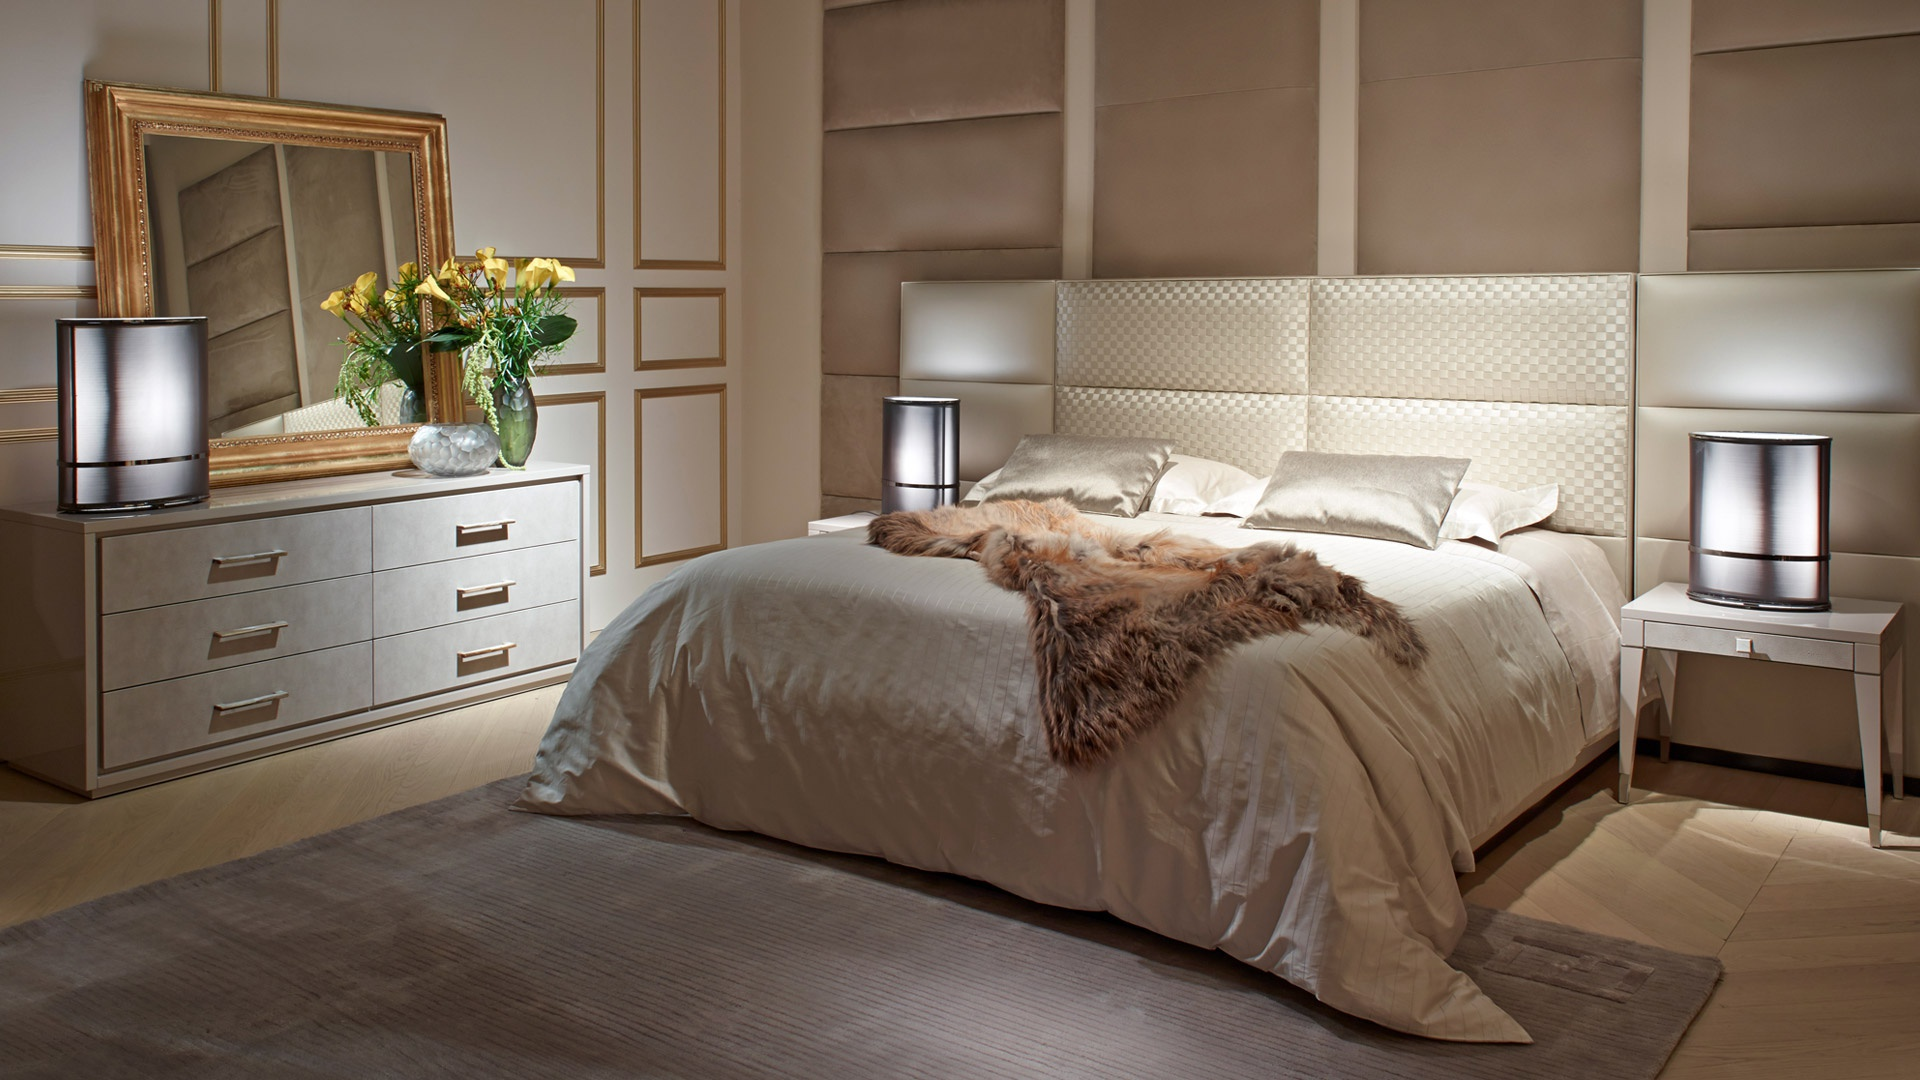 Double urano 2 bed with high upholstered headboard fendi for Interni casa design